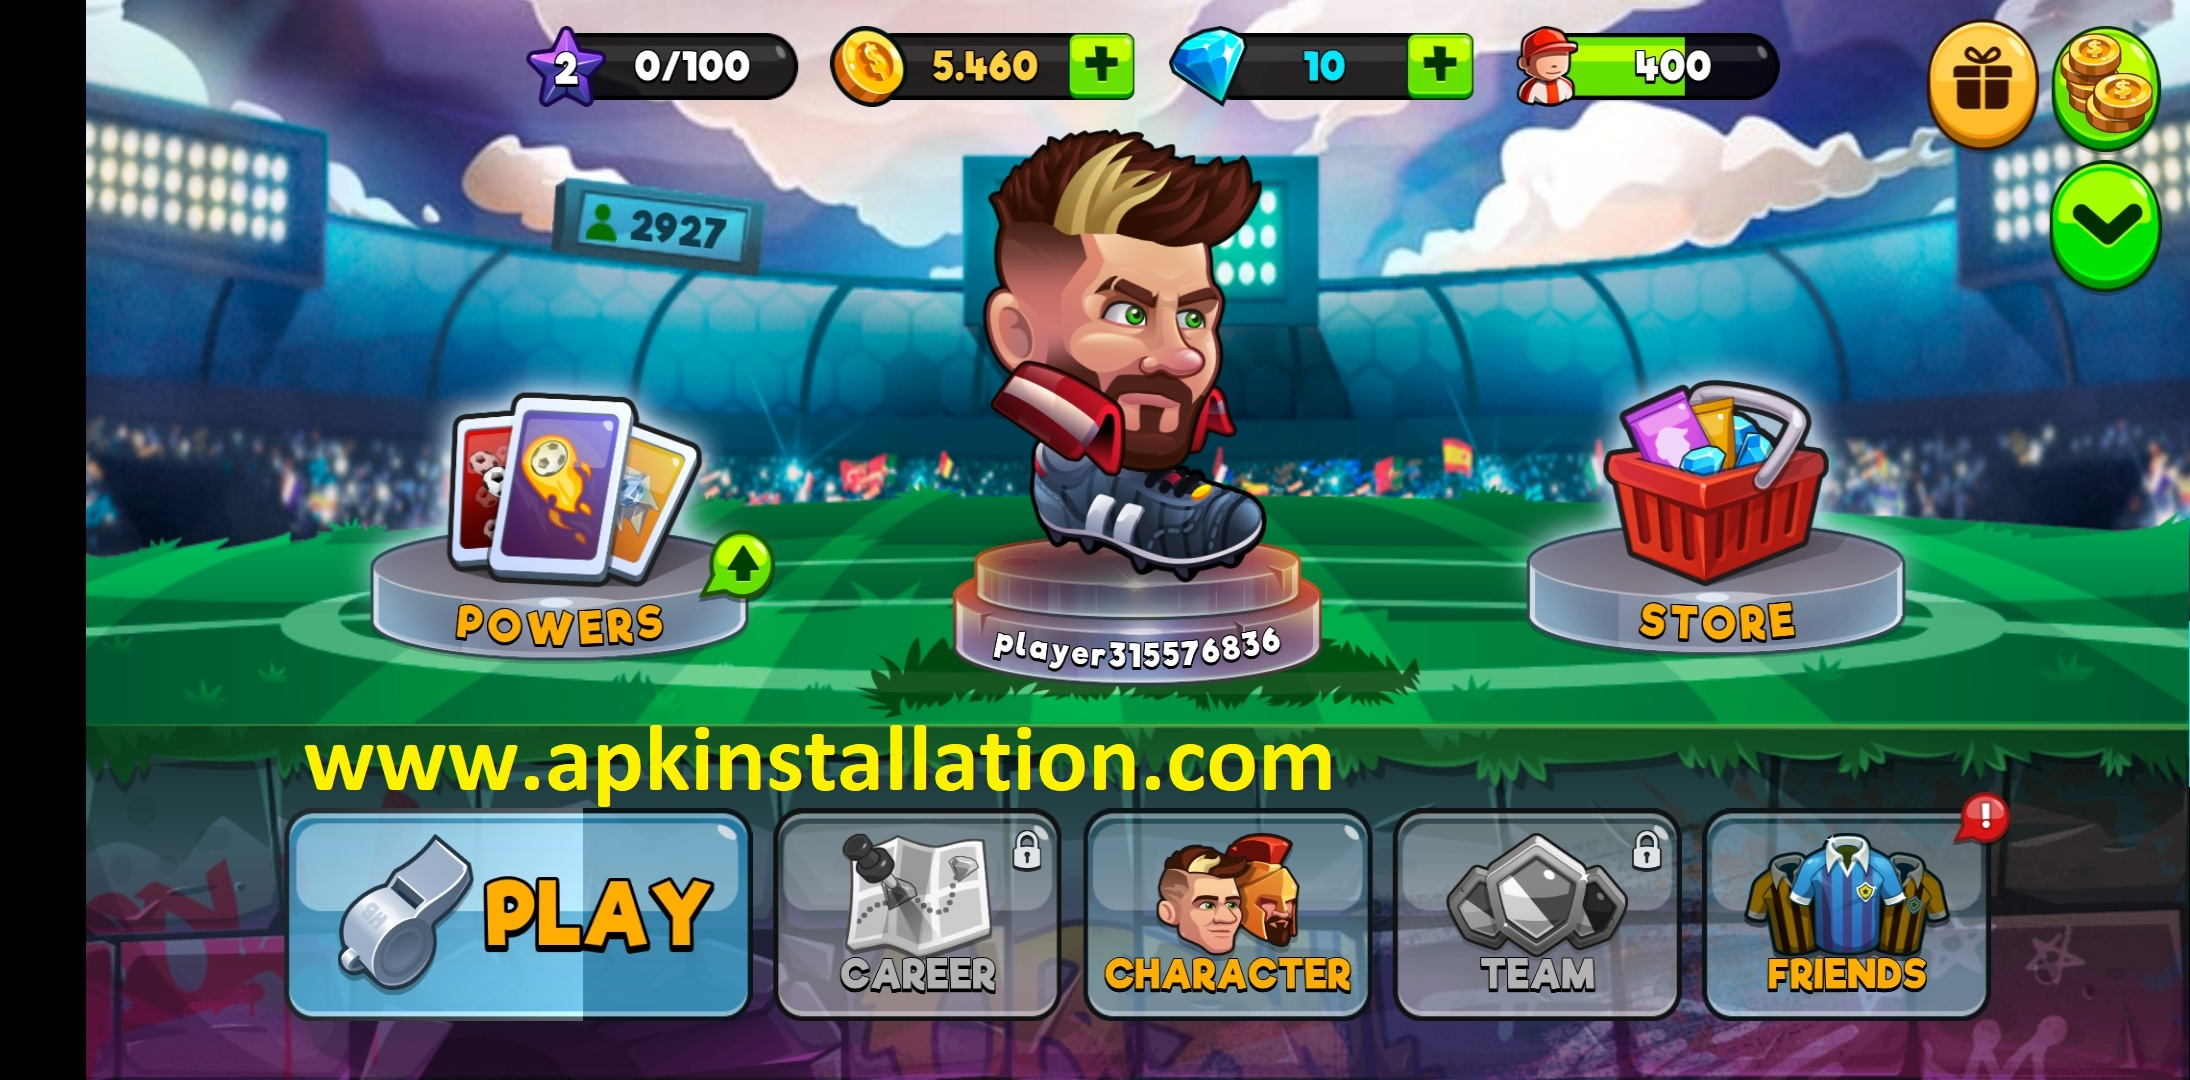 HEAD BALL 2 GAME FREE DOWNLOAD